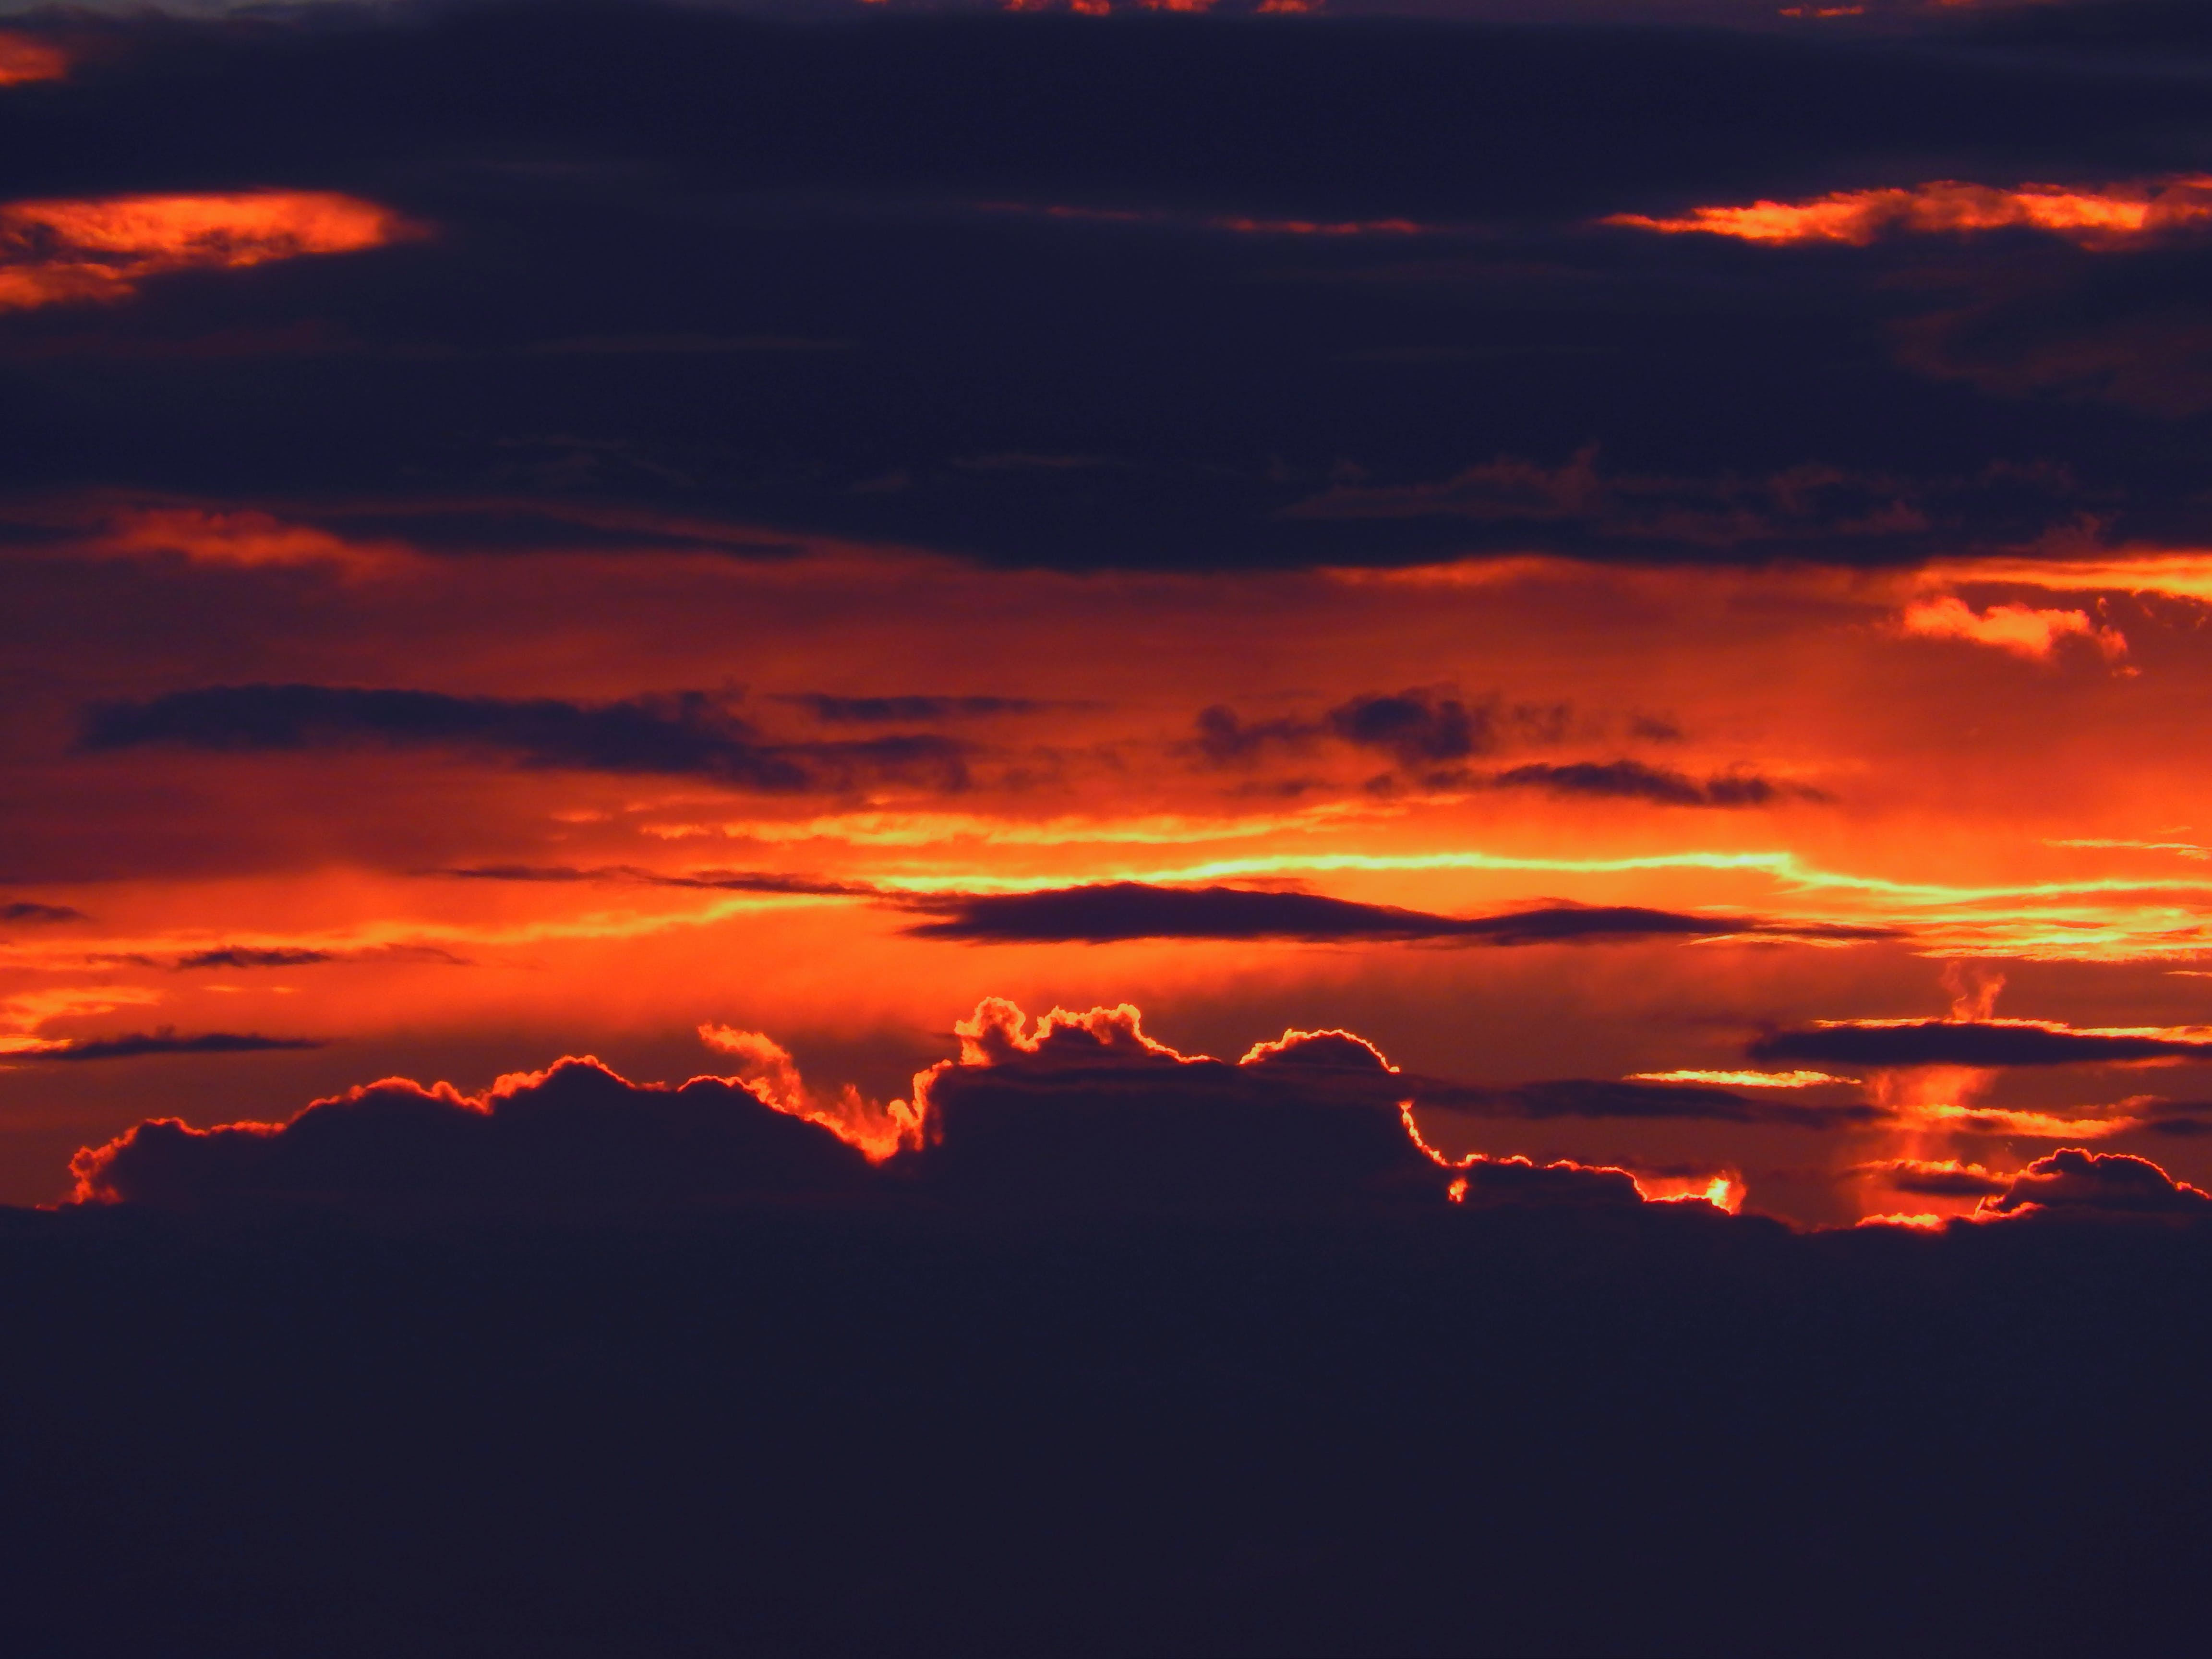 Silhouette of Clouds